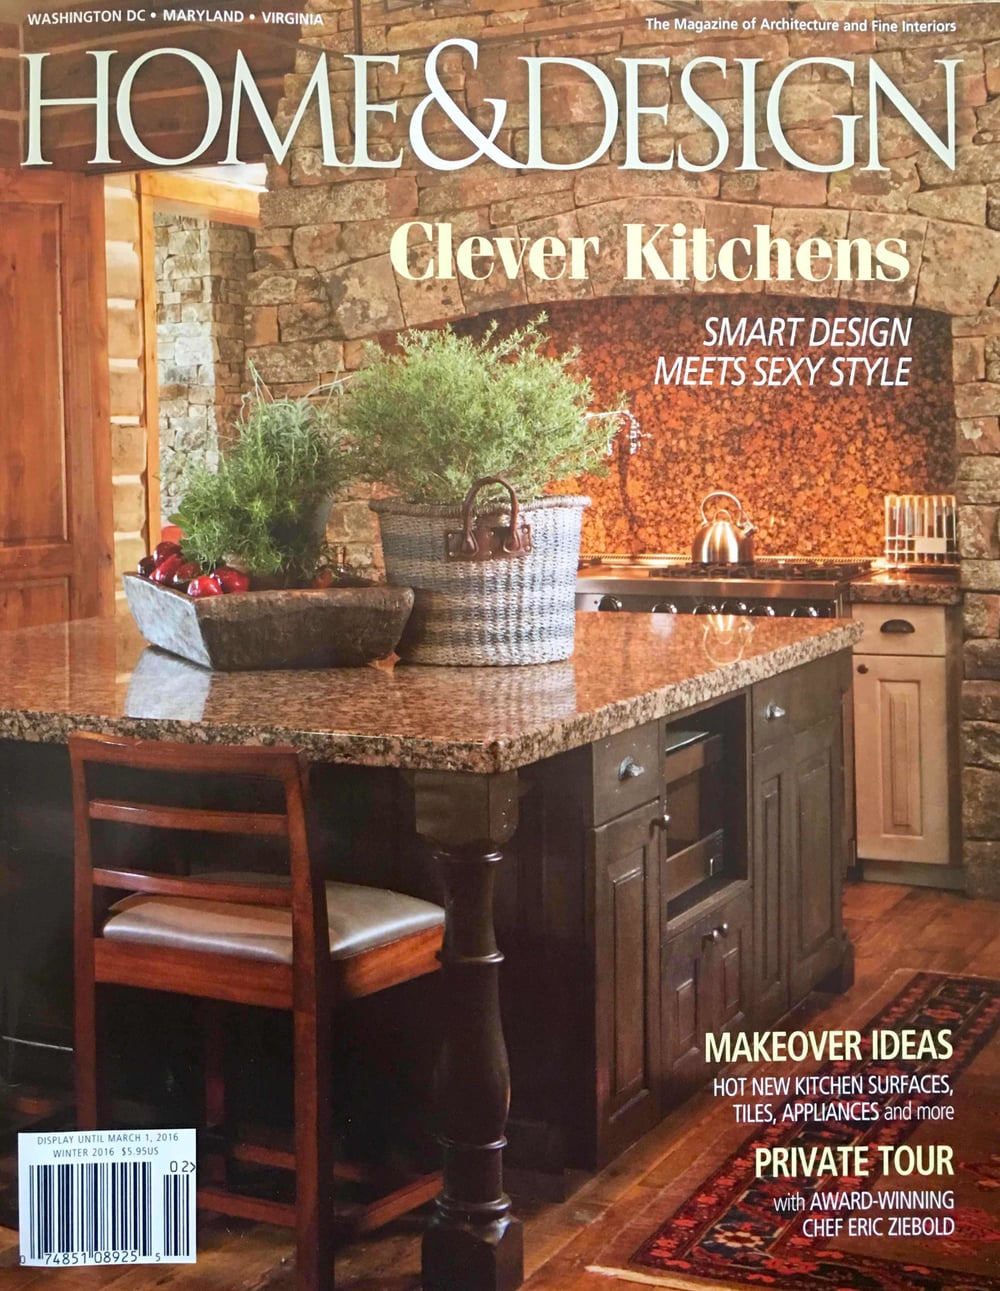 Home & Design, Winter 2016